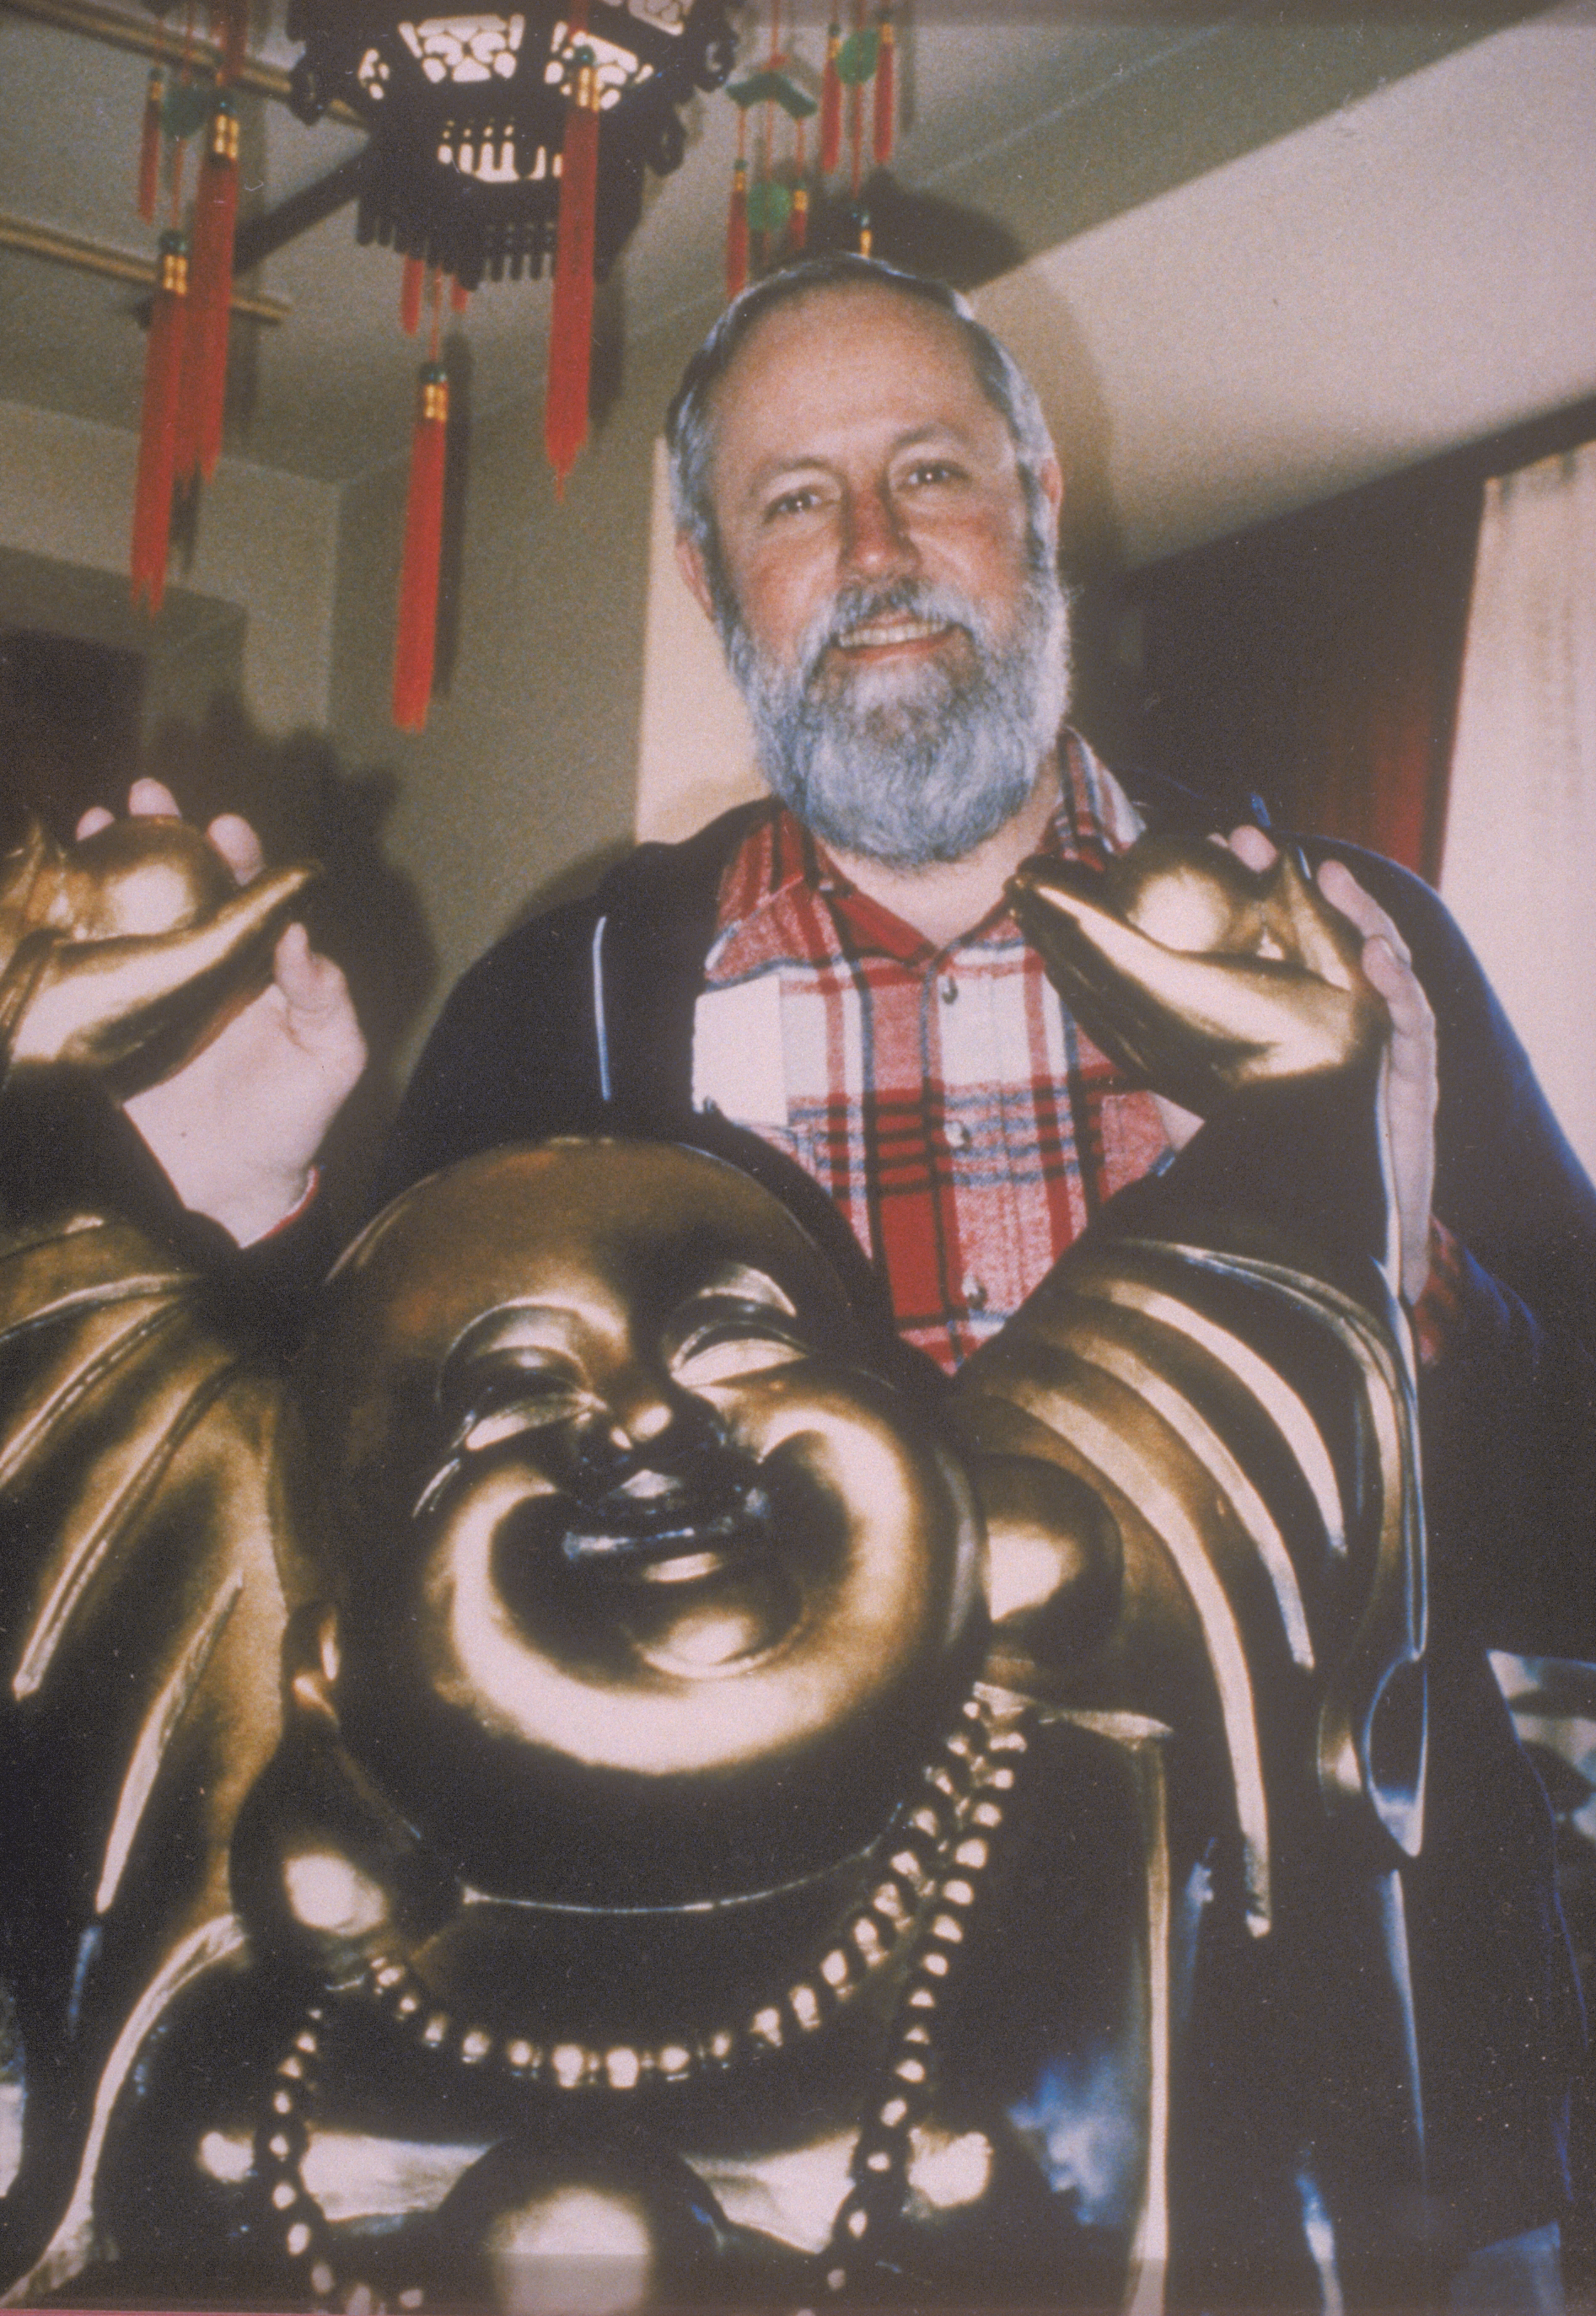 Bob with Laughing Buddha, Waldshut, Germany